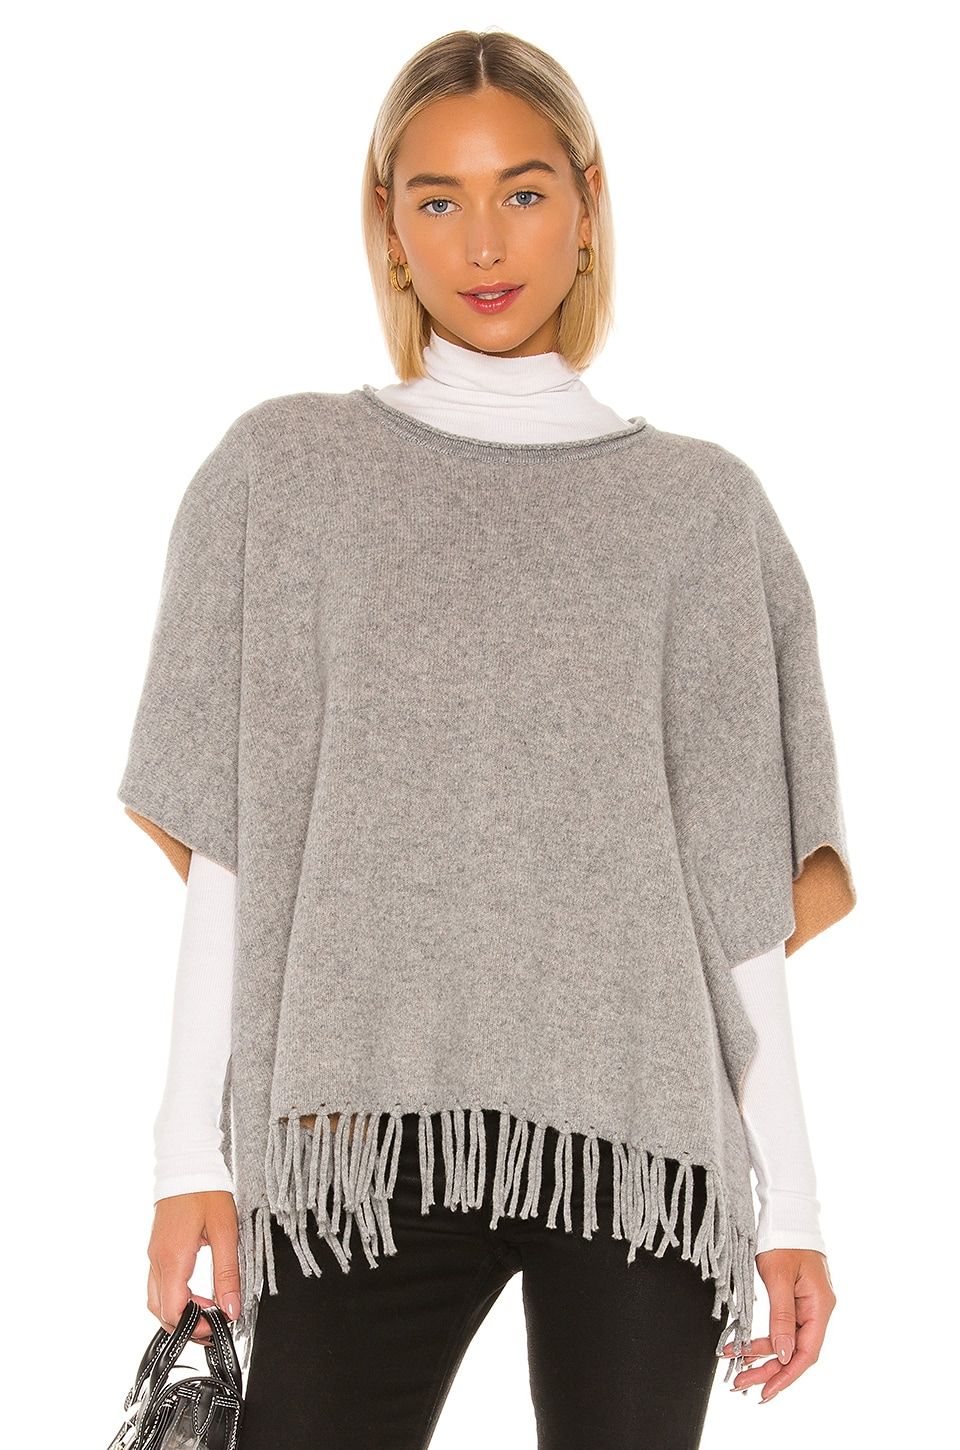 SWTR Double Sided Poncho in Elephant & Brown Sugar